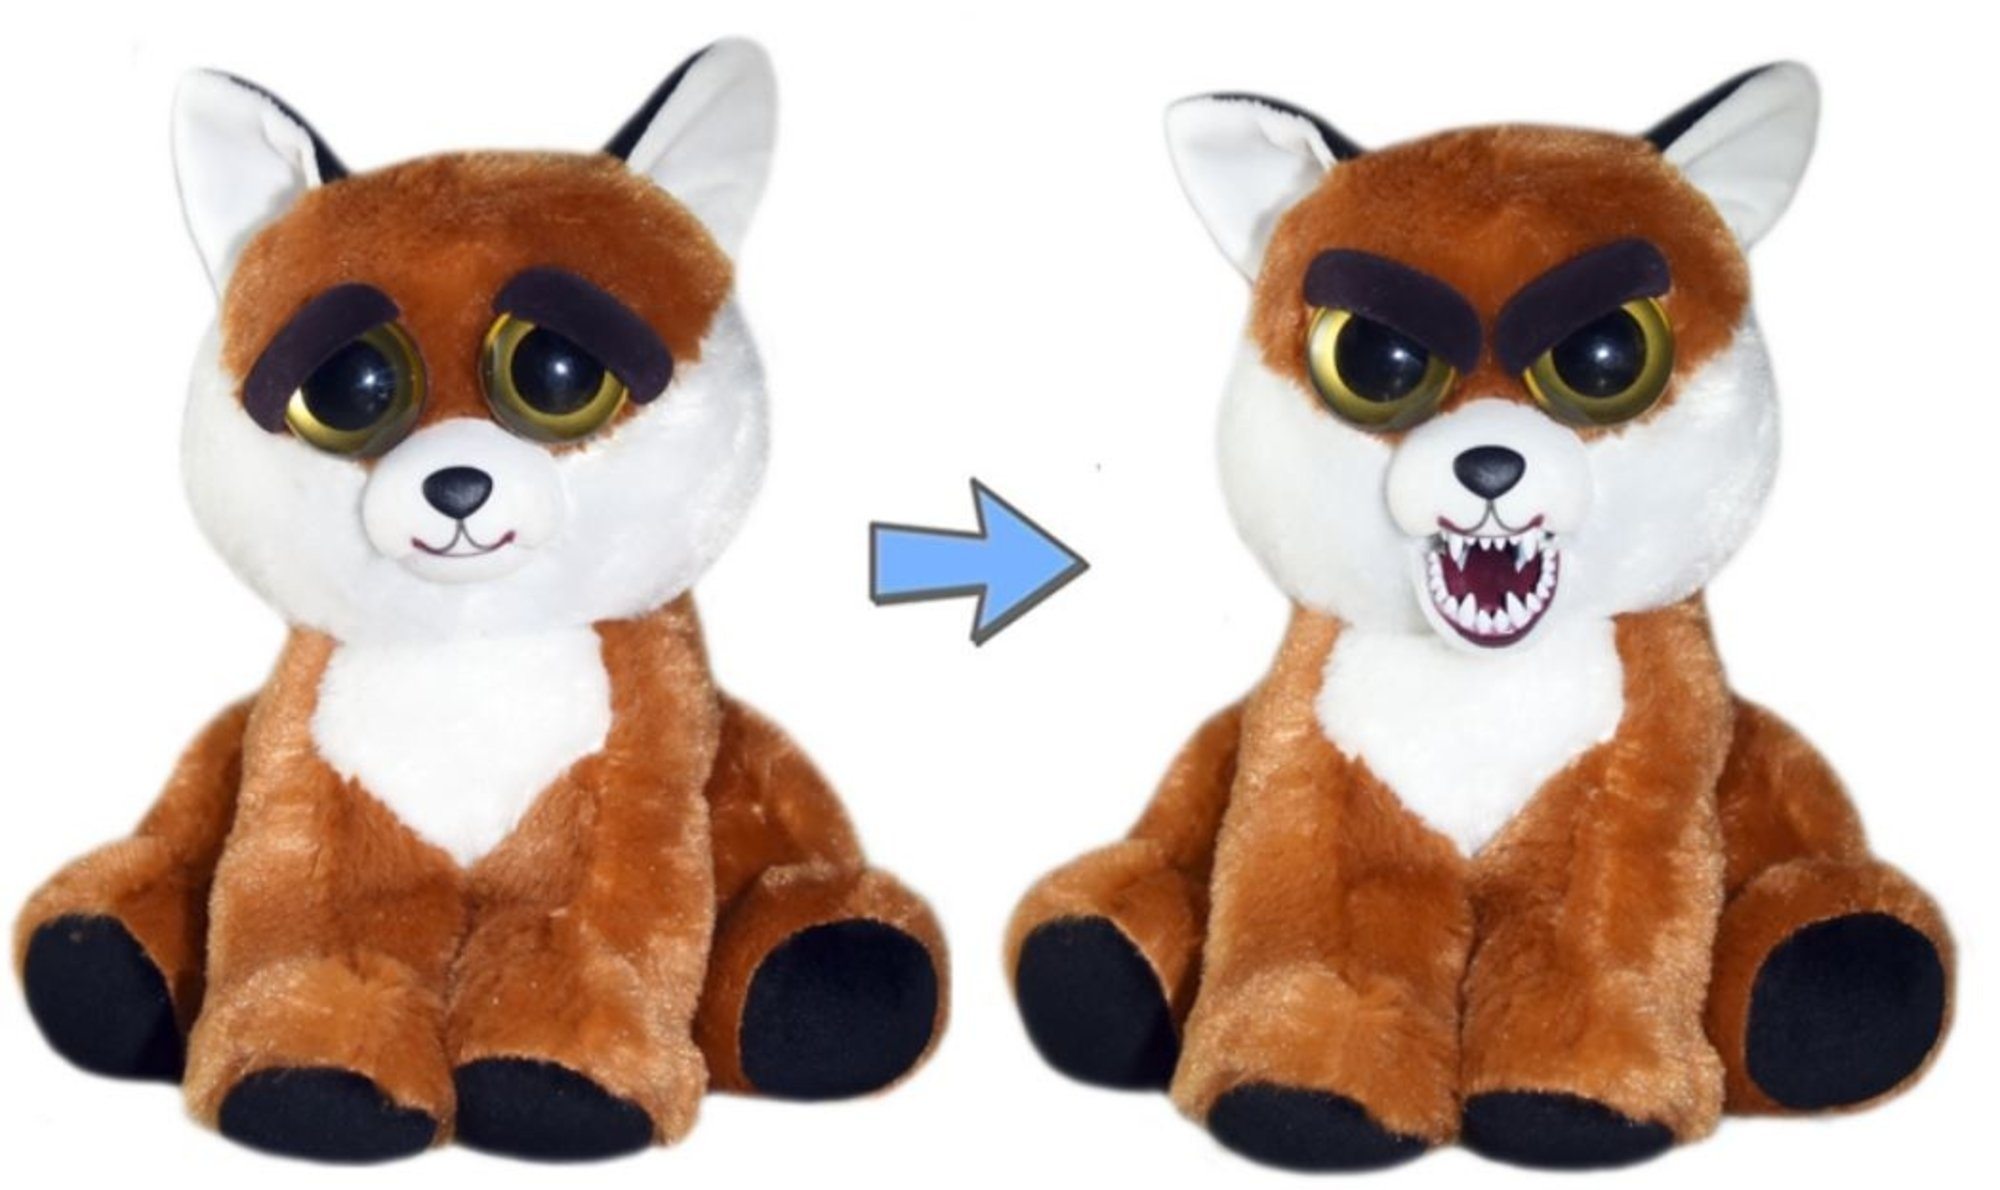 Feisty Pets Sly Sissypants Adorable 8.5'' Plush Stuffed Fox by Feisty Pets